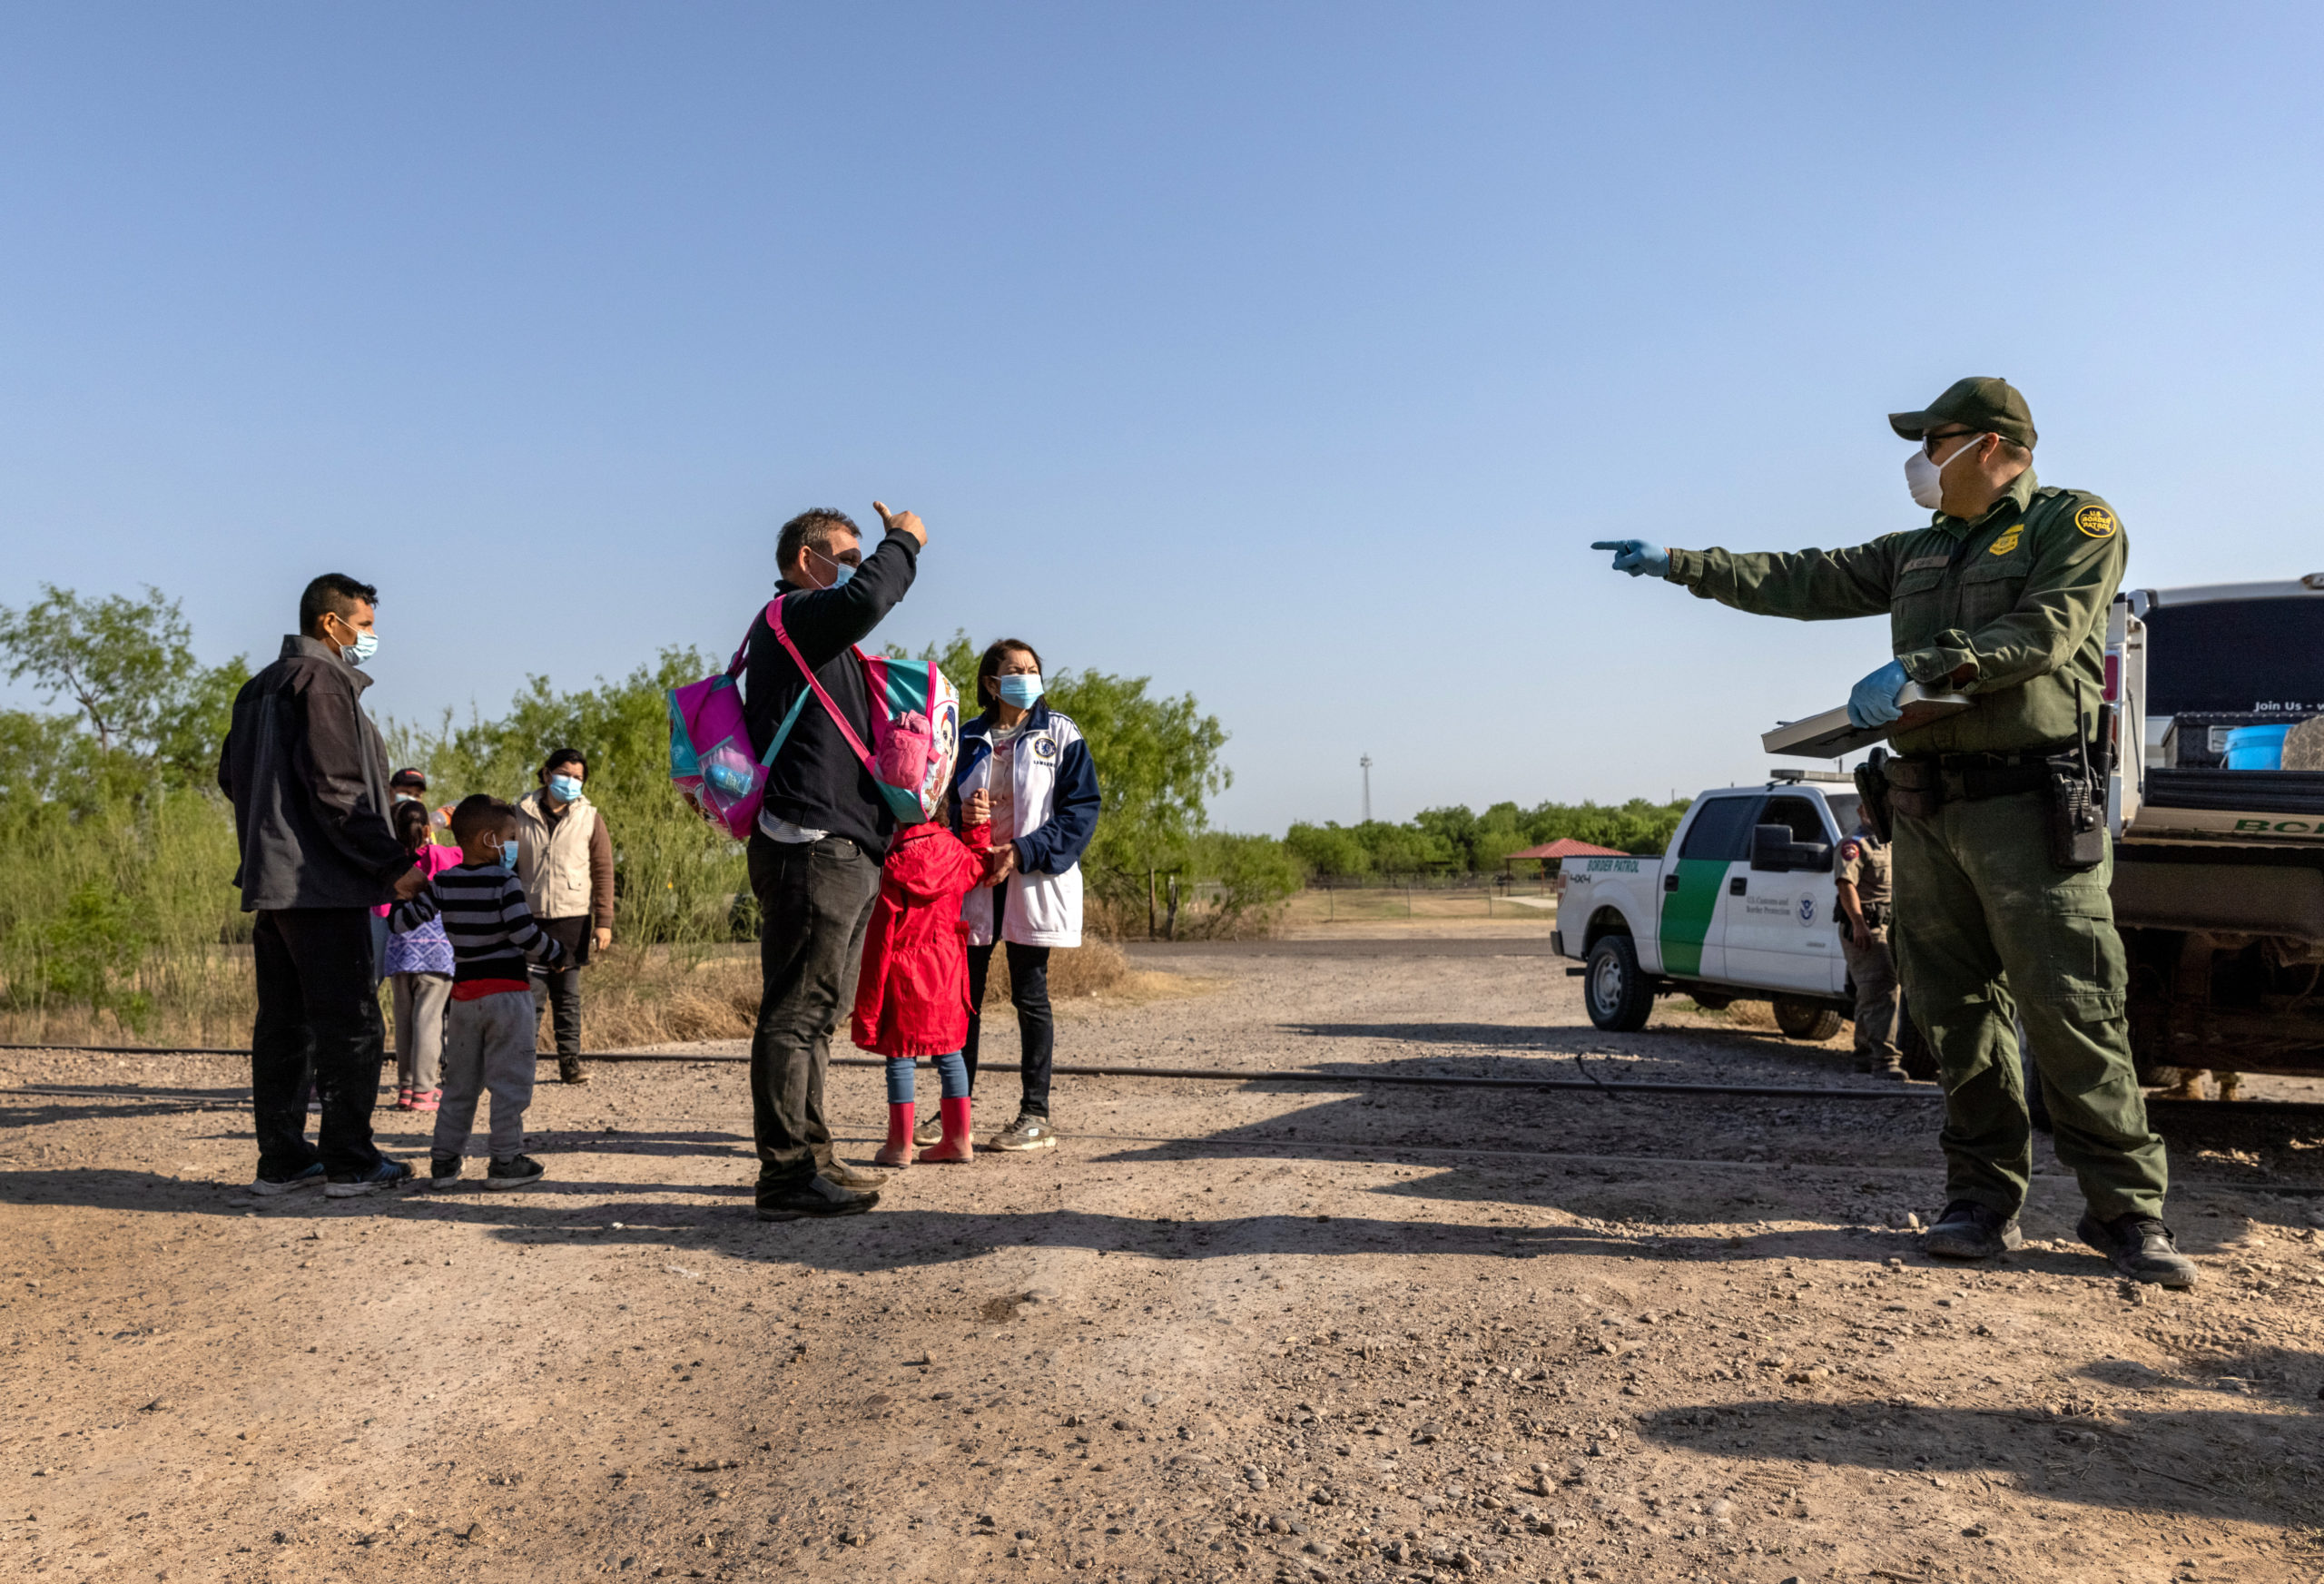 A U.S. Border Patrol agent speaks with a Venezuelan family after they crossed the border from Mexico into the United States on March 26, 2021 in Penitas, Texas. (Photo by John Moore/Getty Images)